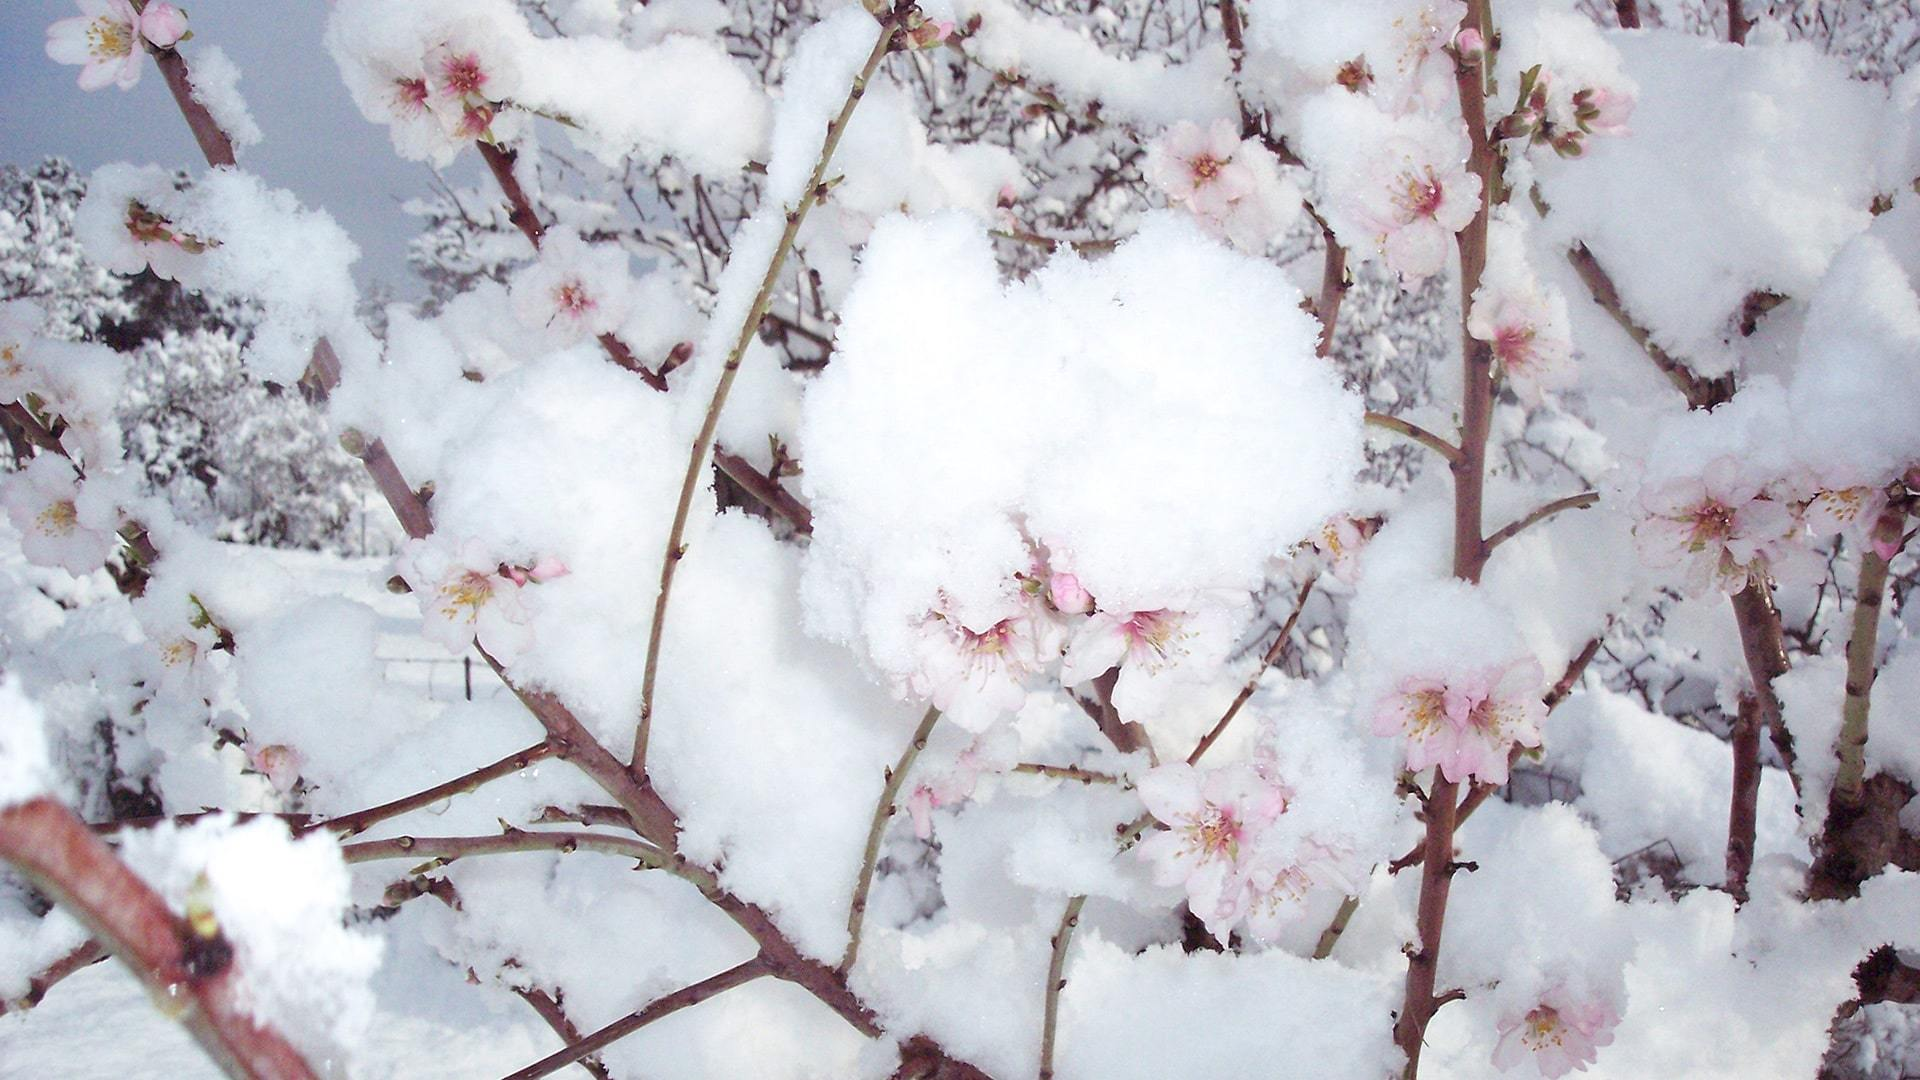 Almond tree flowers in snow Mlalorca by Ulla min